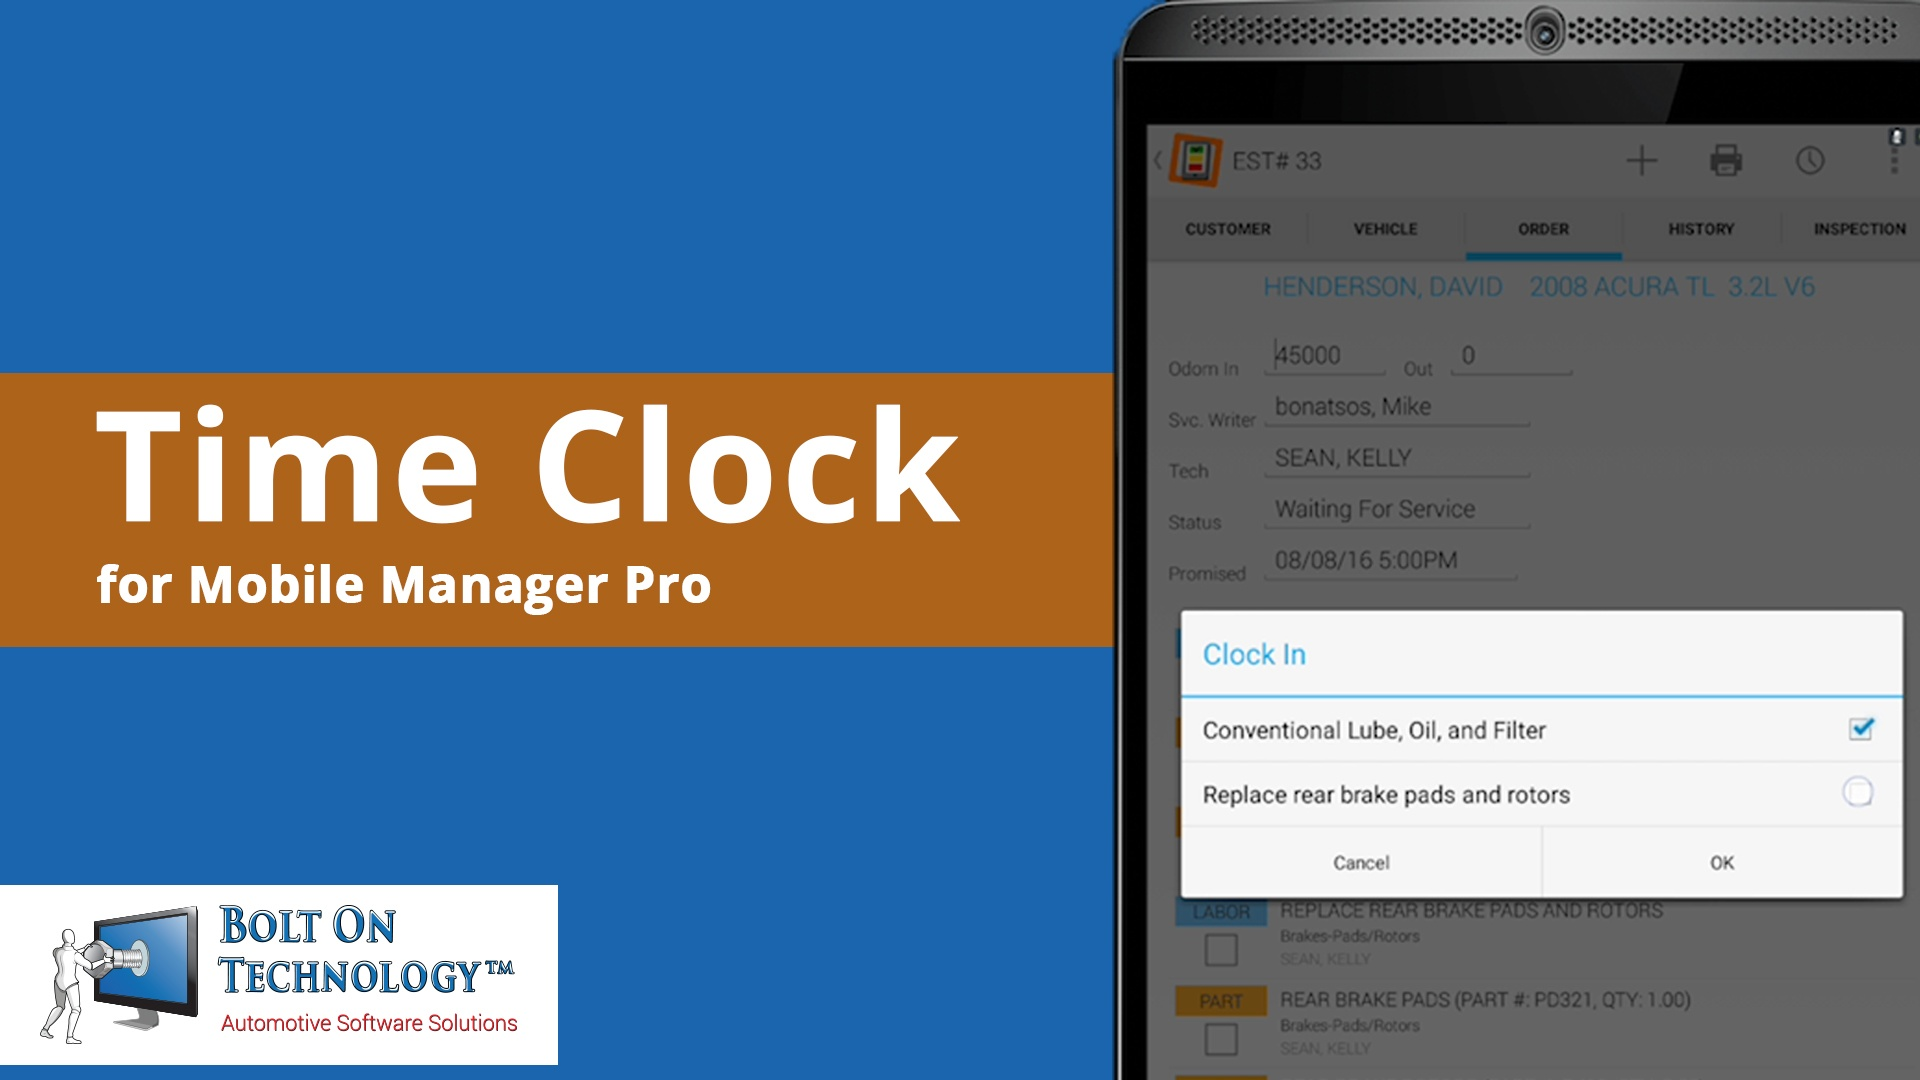 BOLT ON Launches Time Clock for Mobile Manager Pro